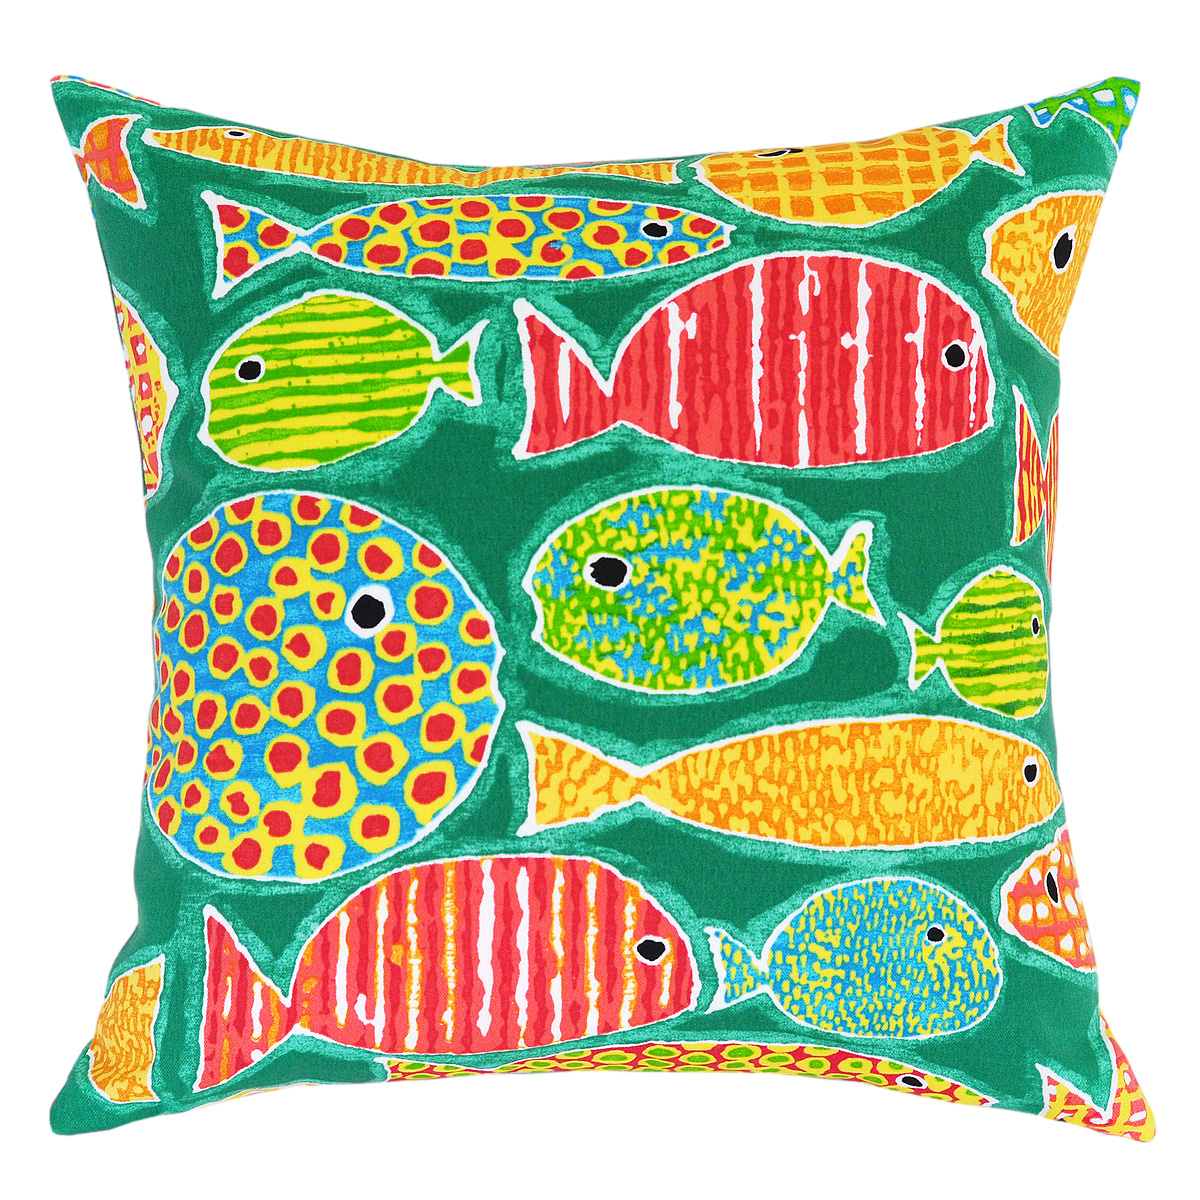 Sunfish Lagoon Outdoor Cushion - 45x45cm